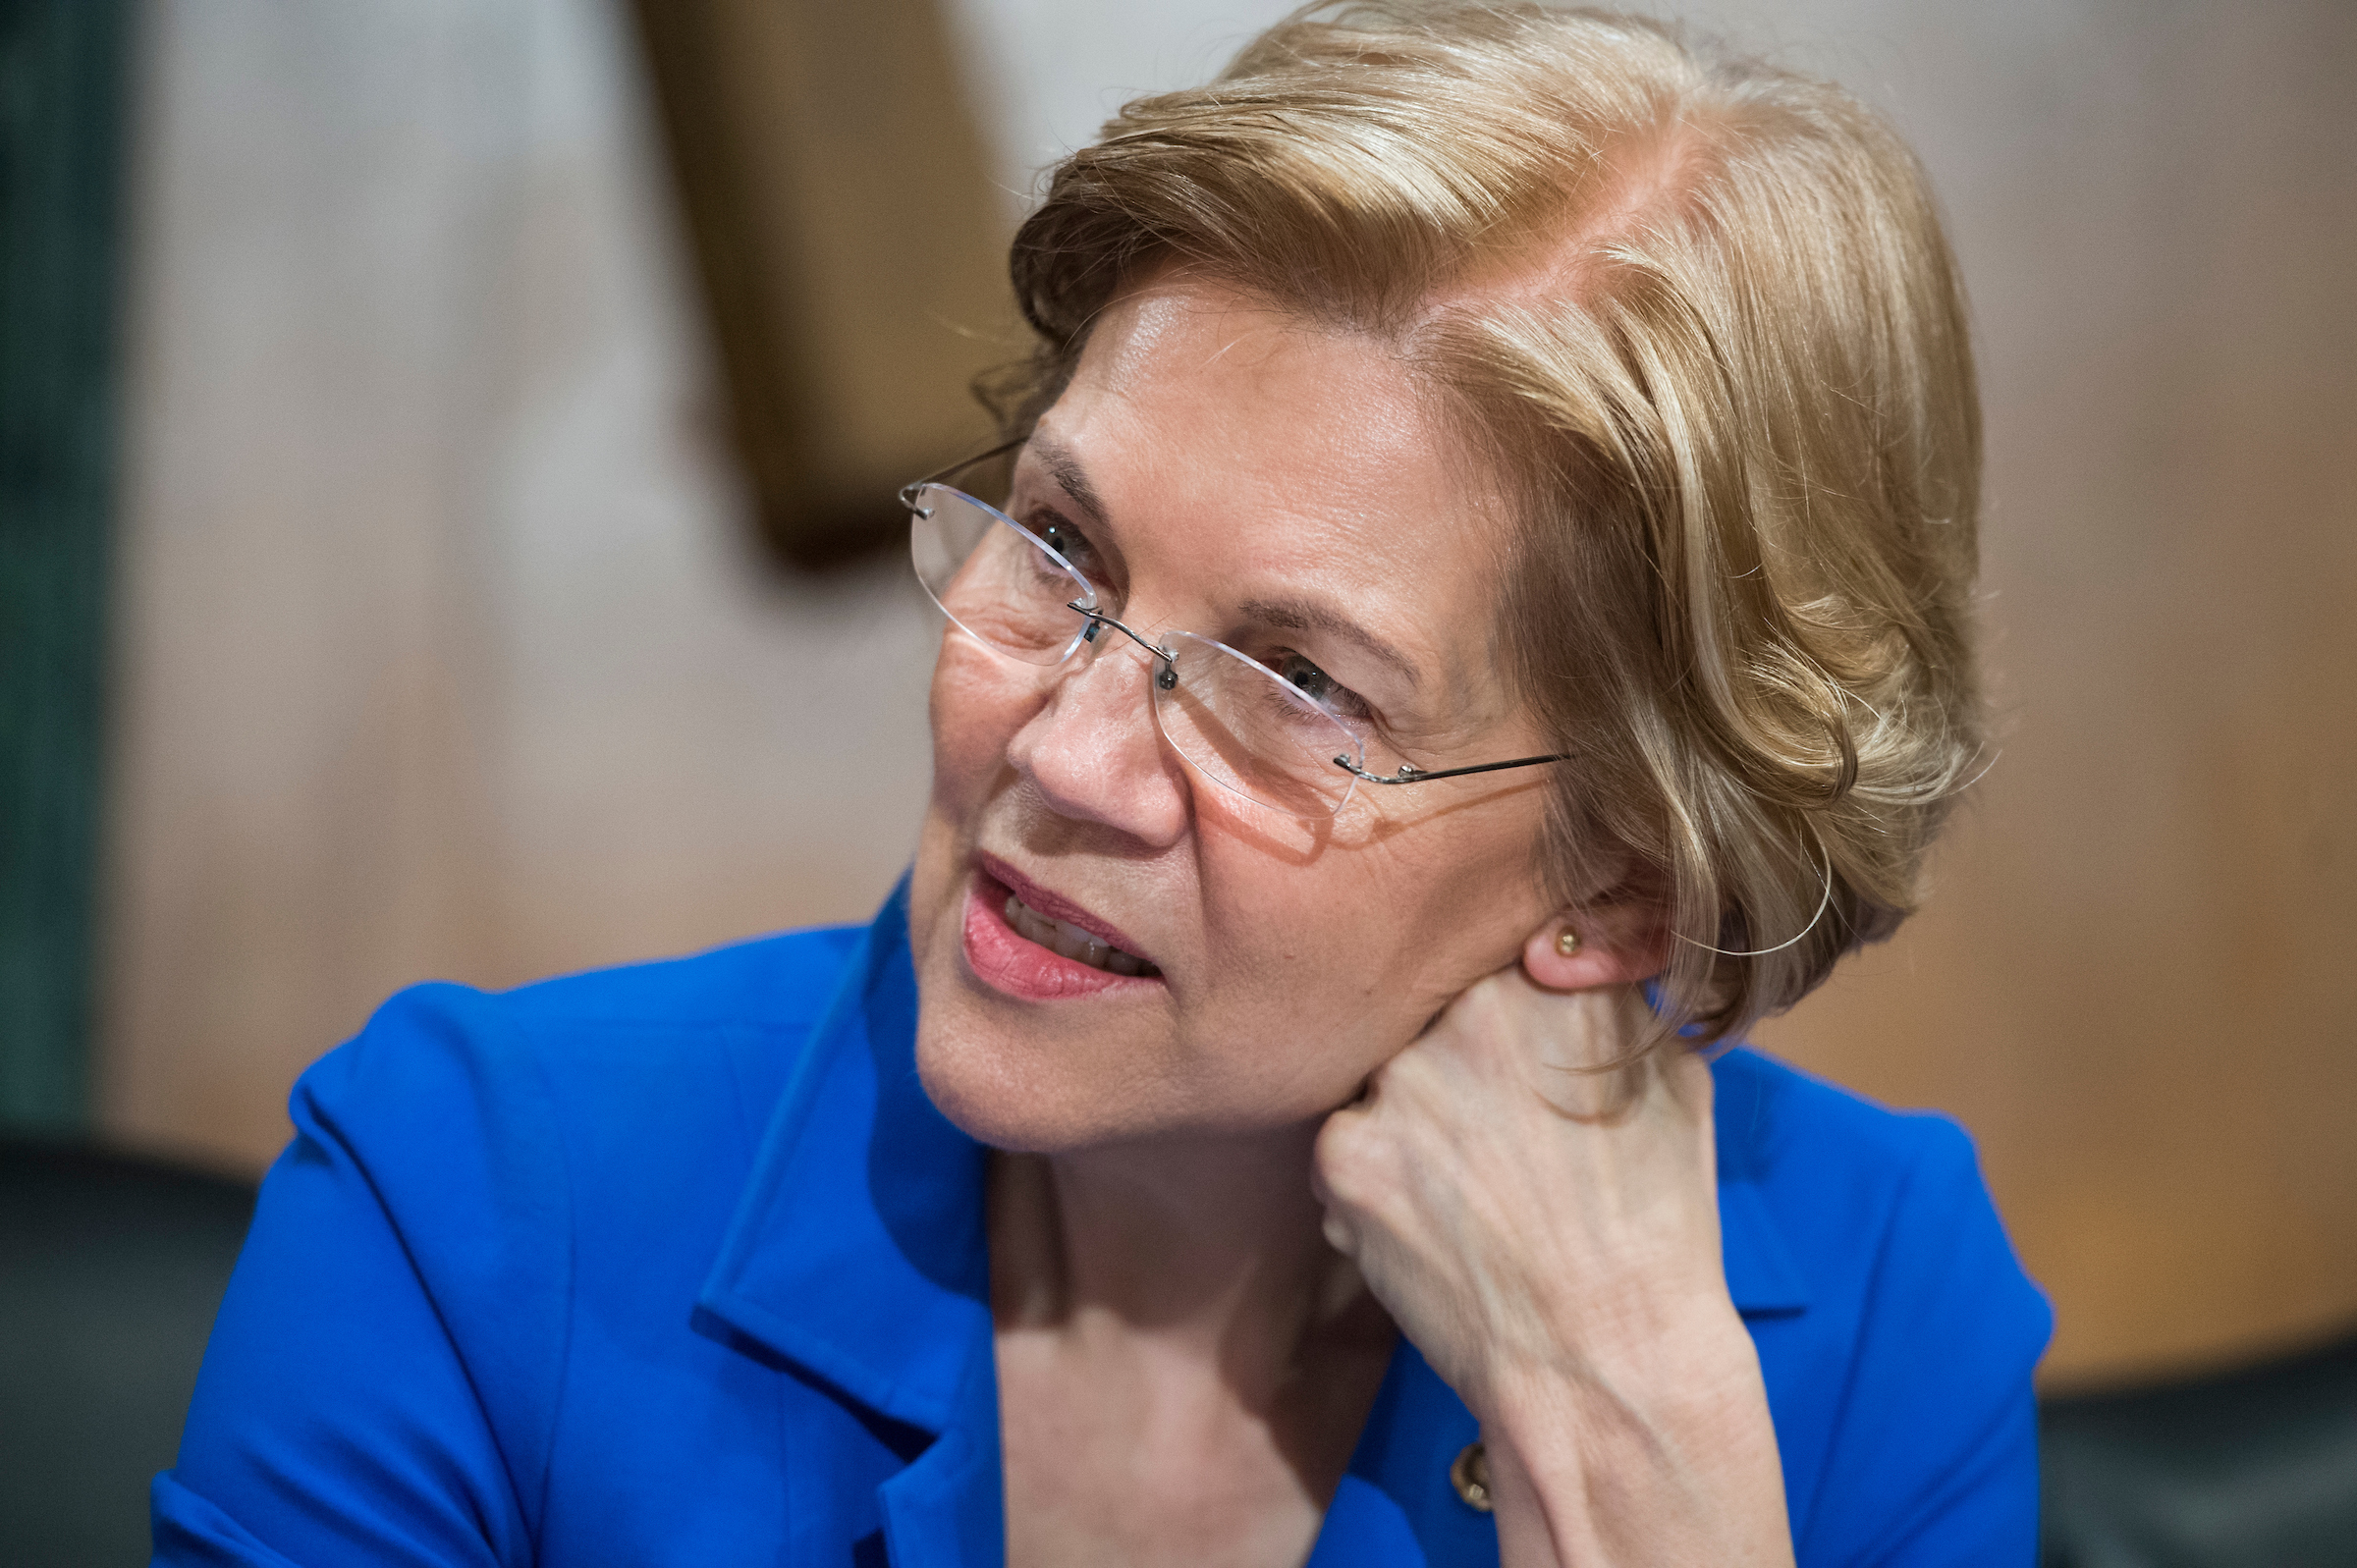 UNITED STATES - JANUARY 23: Sen. Elizabeth Warren, D-Mass., is seen during a Senate Banking, Housing and Urban Affairs Committee hearing in Dirksen Building on the nominations of Jelena McWilliams, Marvin Goodfriend, and Thomas Workman on January 23, 2018. (Photo By Tom Williams/CQ Roll Call)